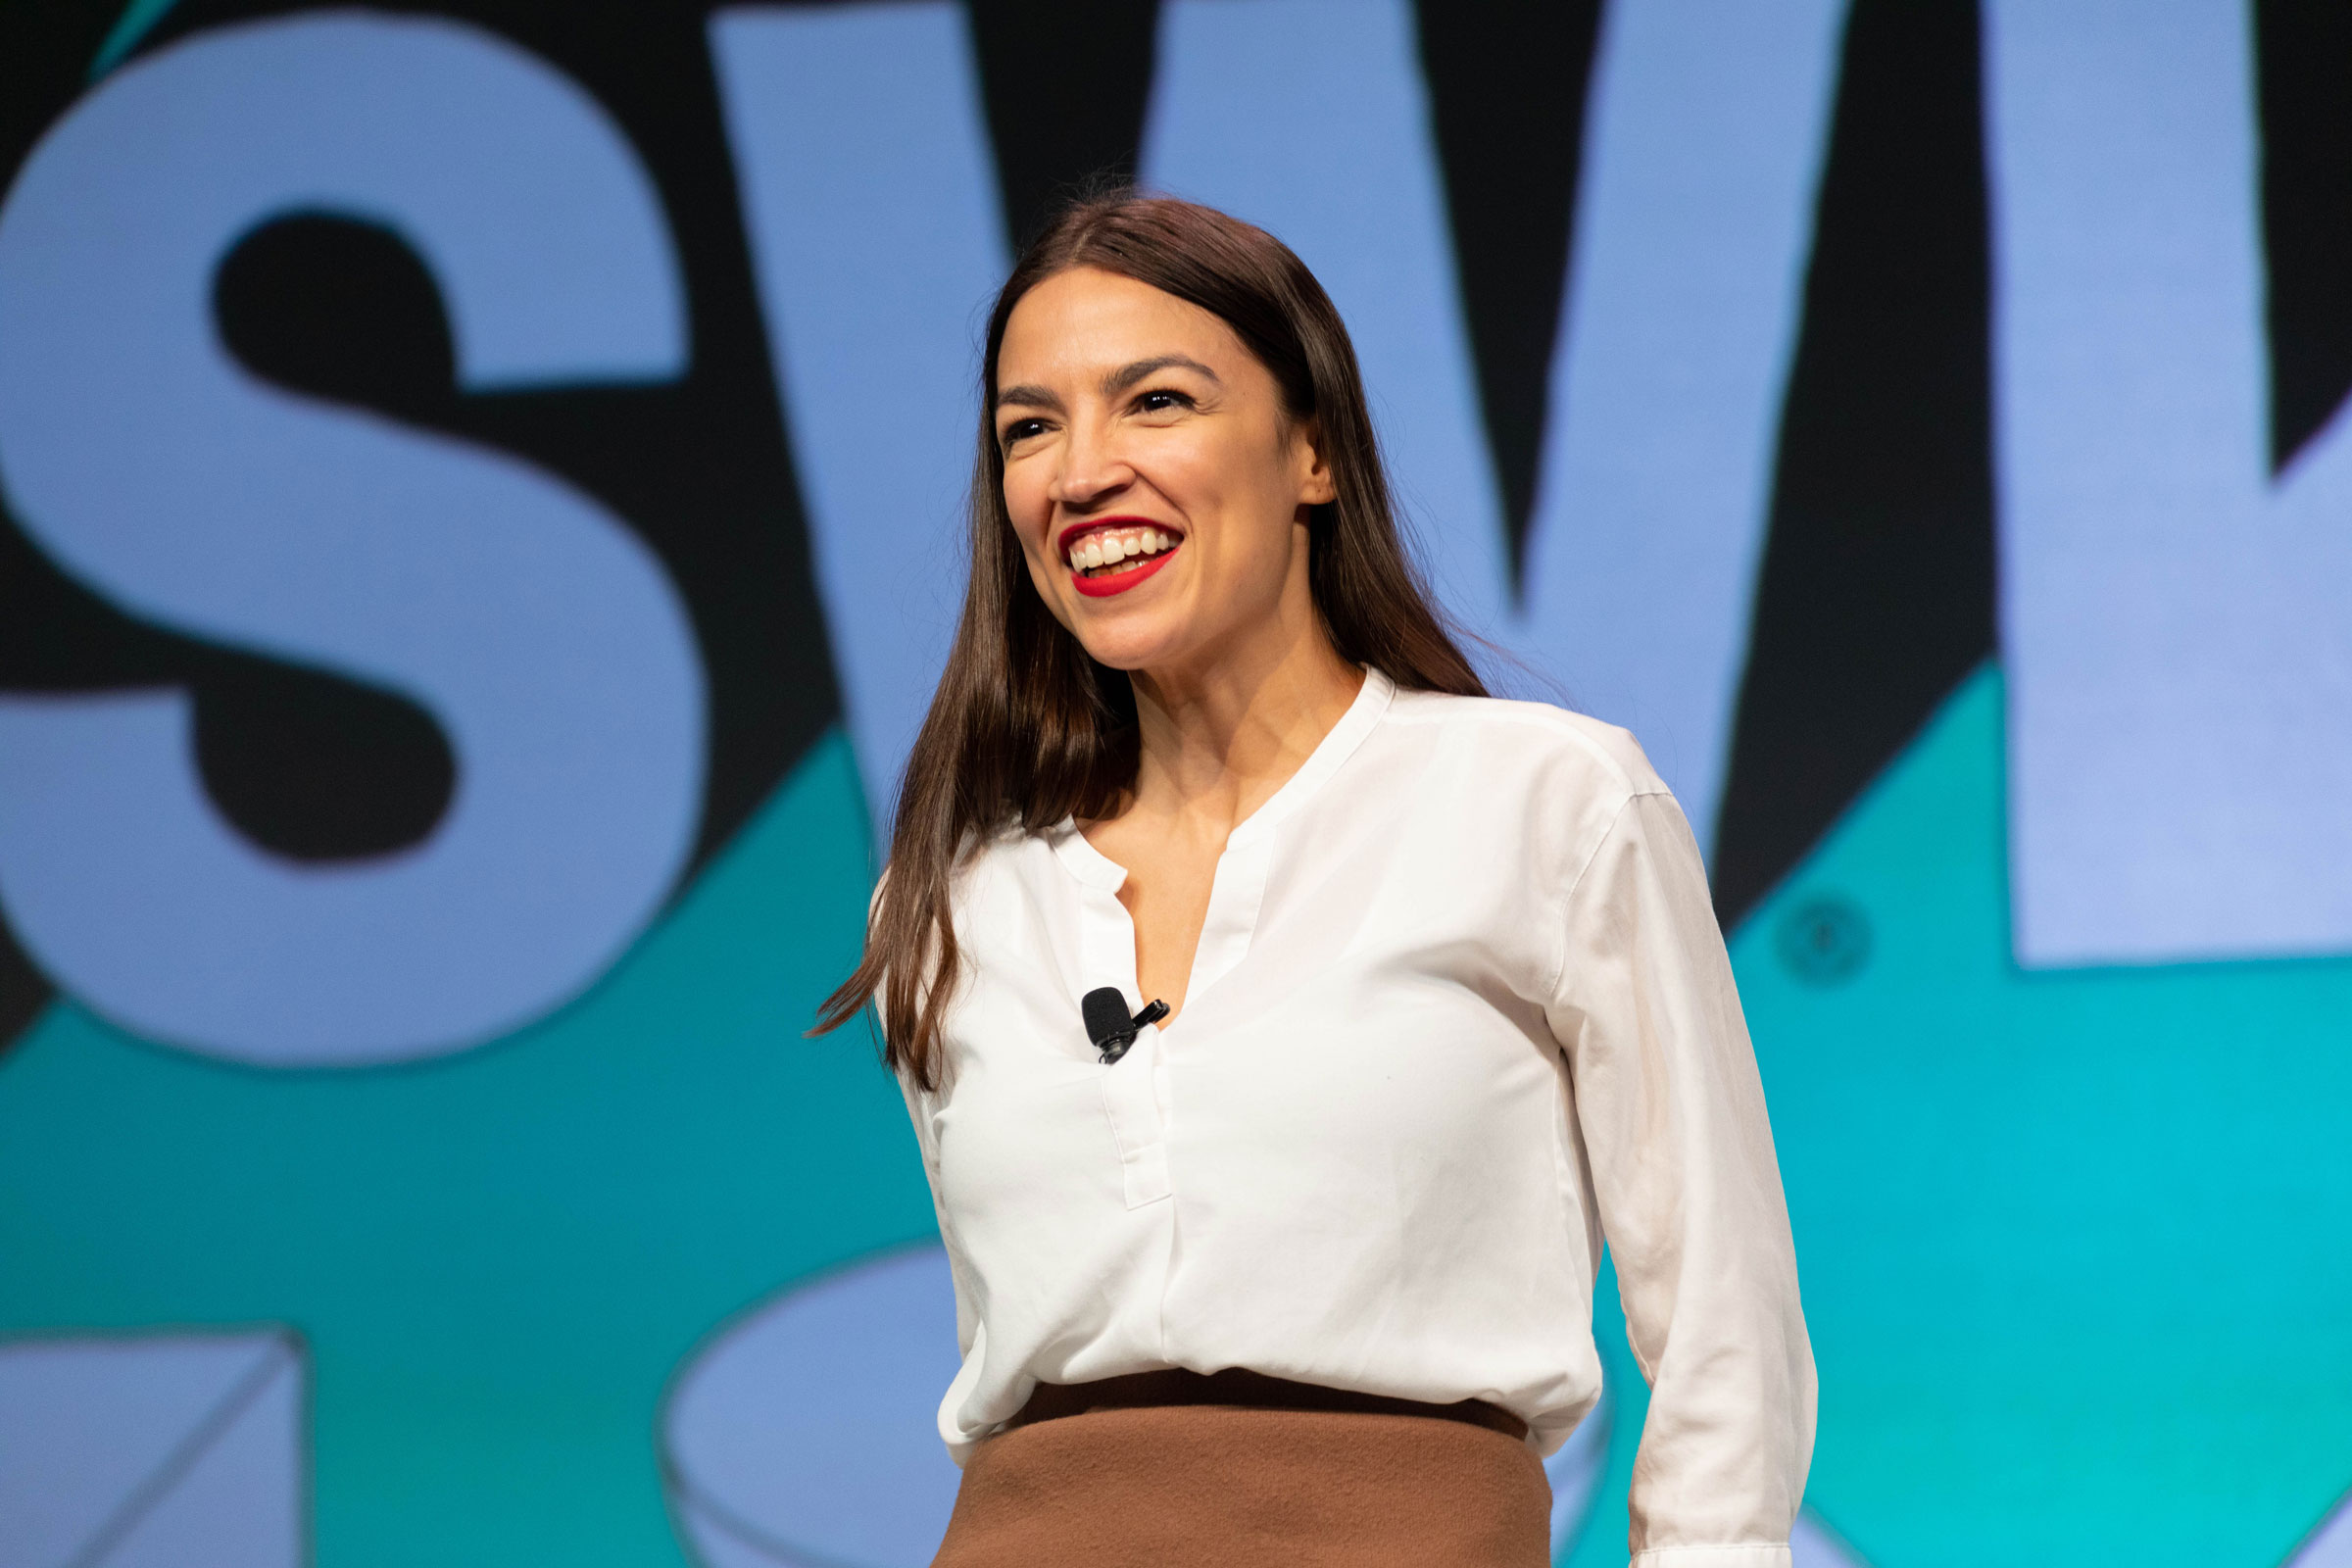 Alexandria Ocasio-Cortez smiles while standing on stage. She has long brown hair and wears red lipstick and a white blouse.